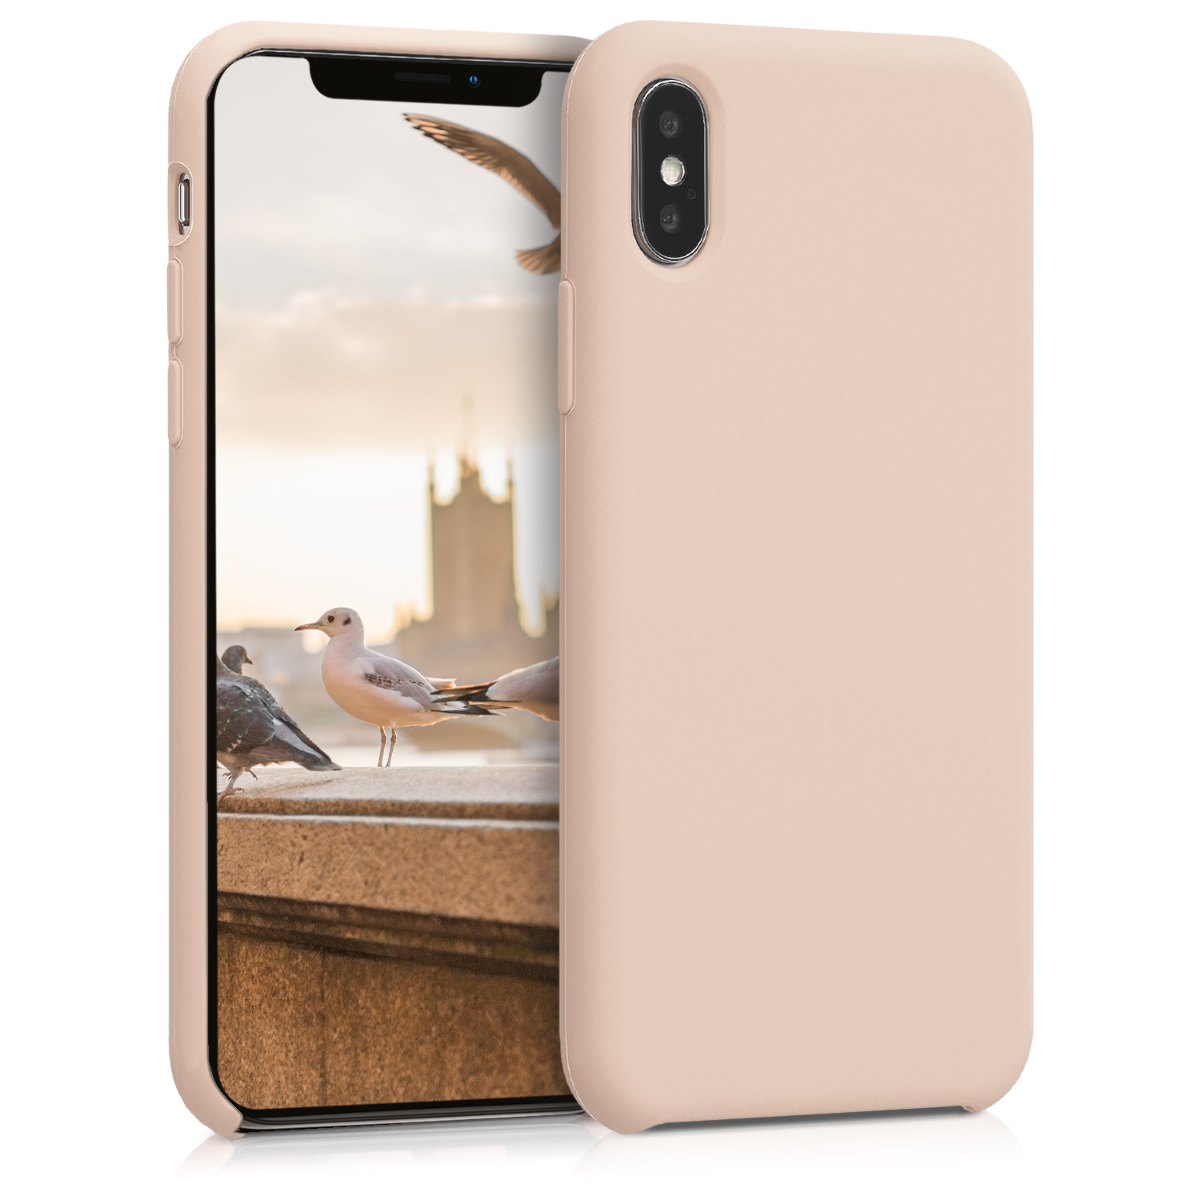 KW Θήκη Σιλικόνης Apple iPhone X - Soft Flexible Rubber - Mother Of Pearl (42495.154)